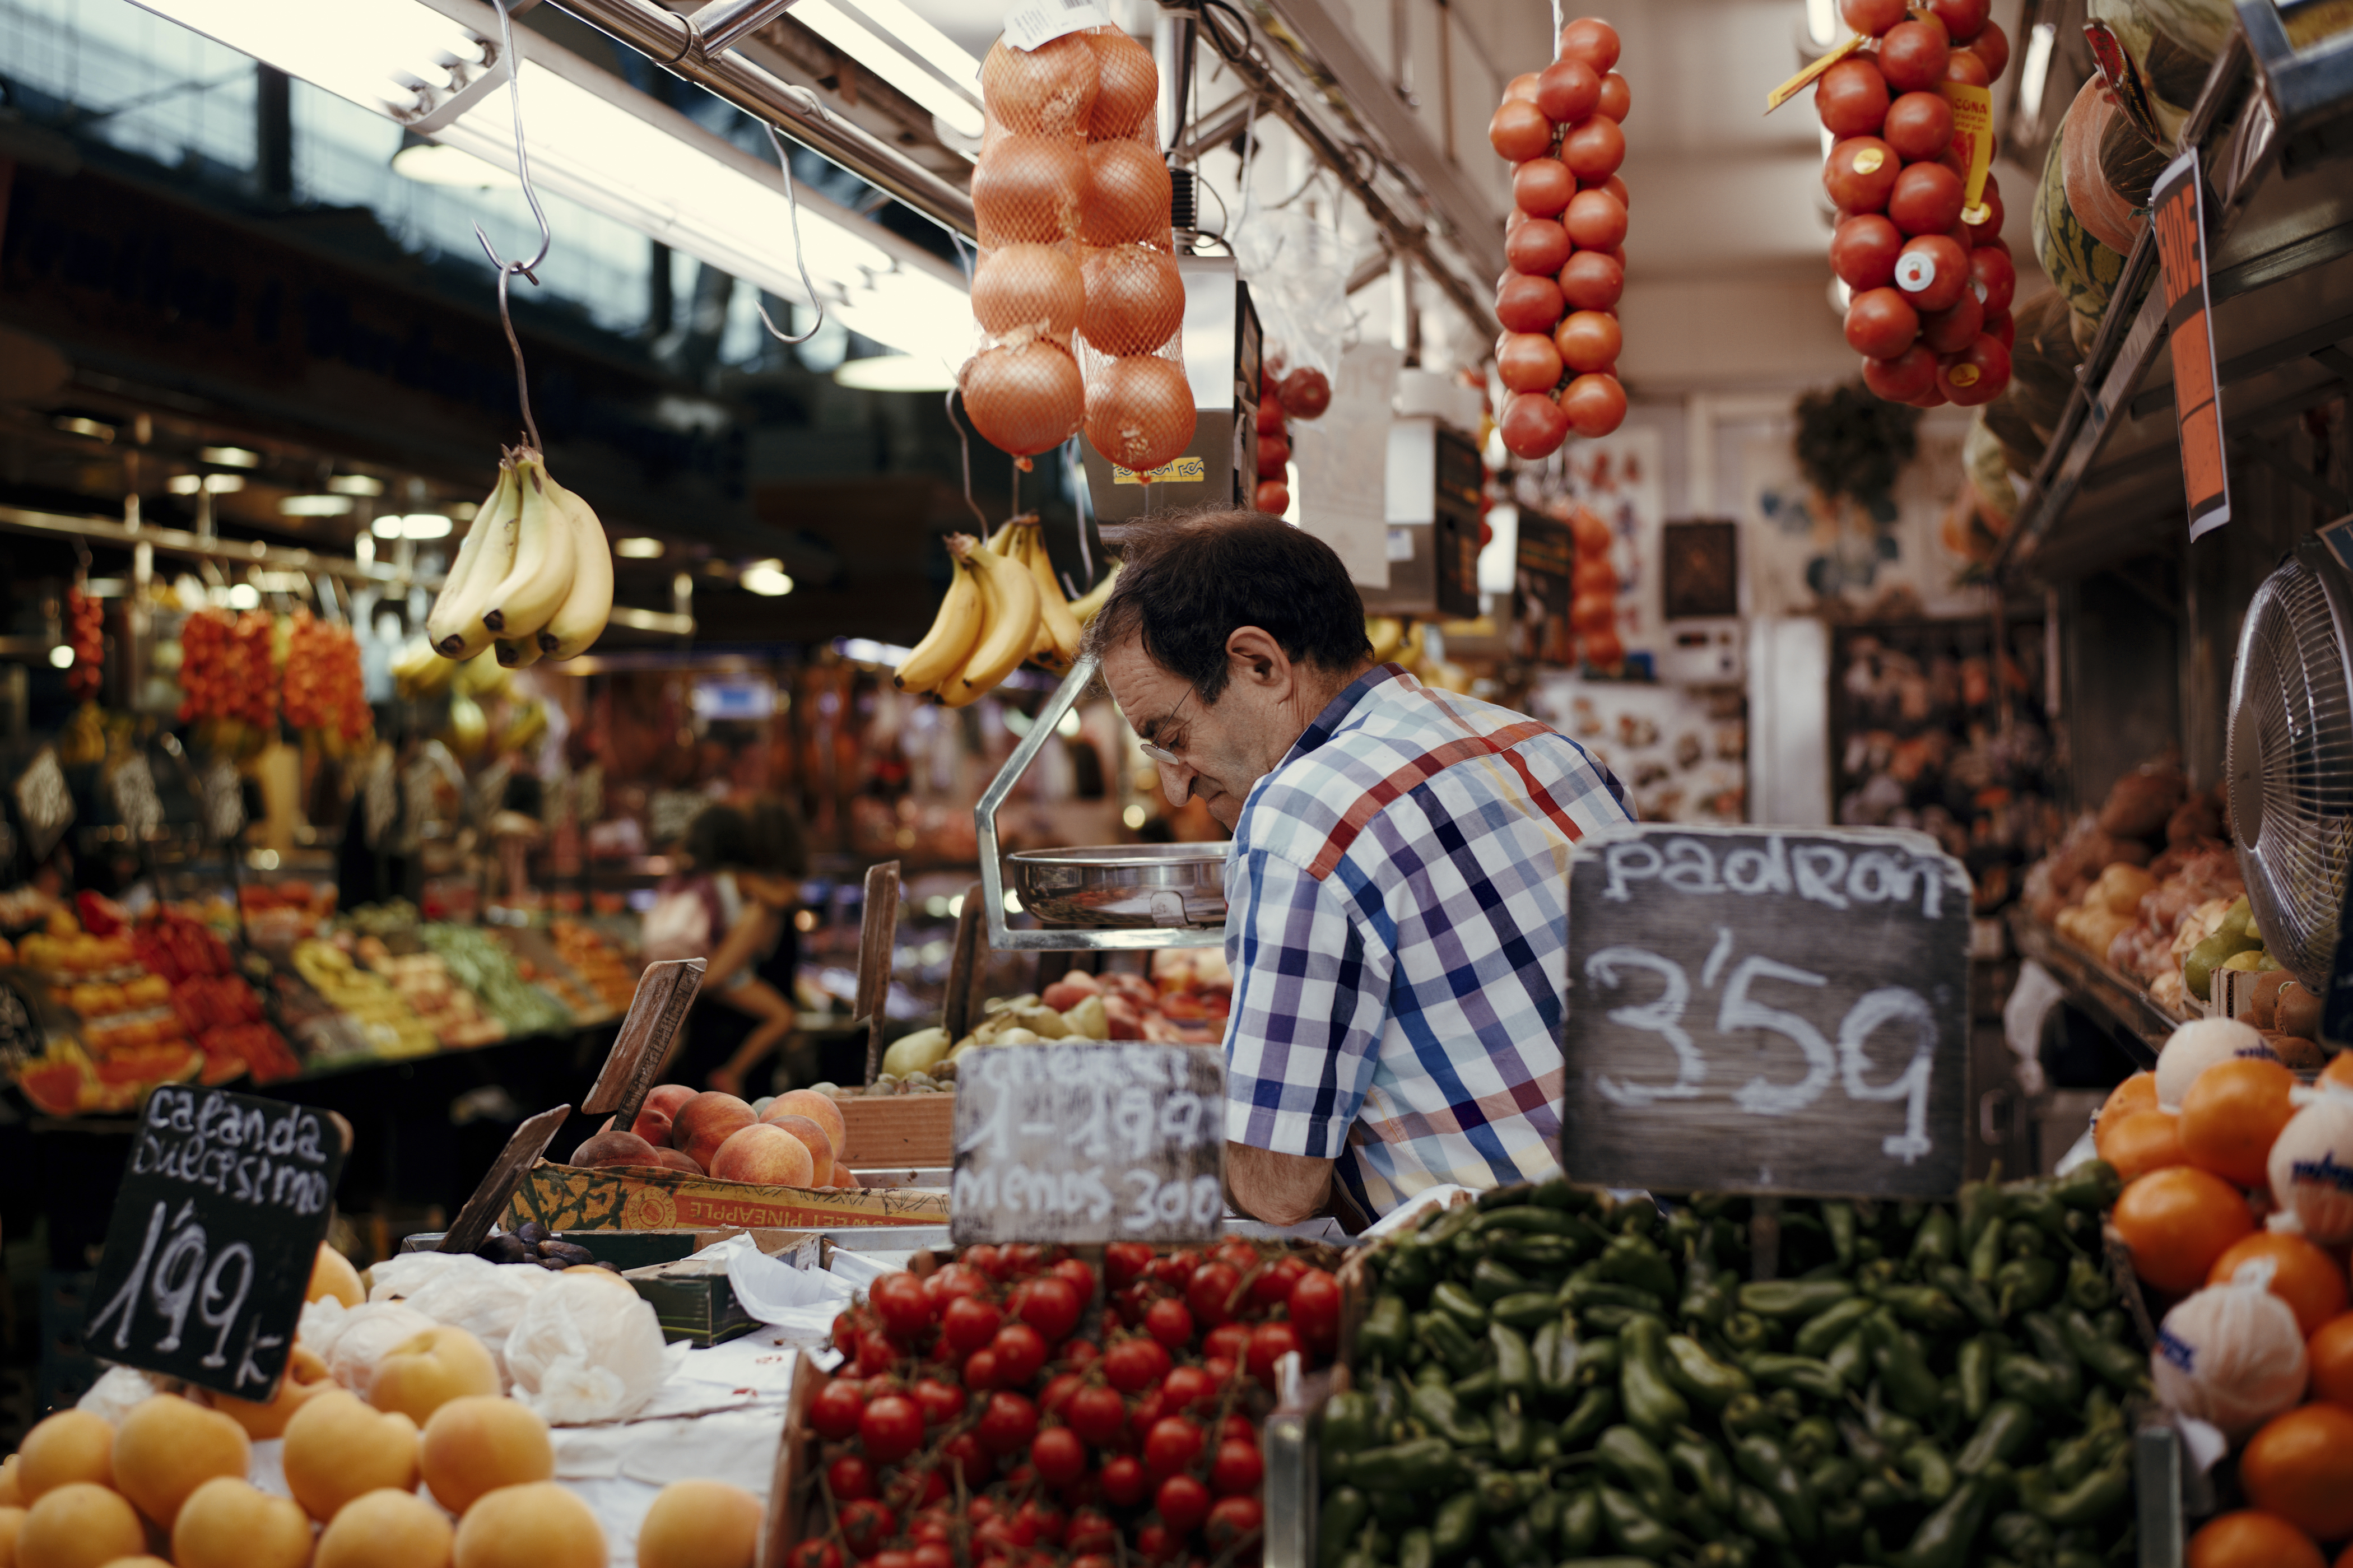 Barcelona, Spain - September 30, 2014: People visit and buy food in the most famous market in the city called La Boqueria in Barcelona